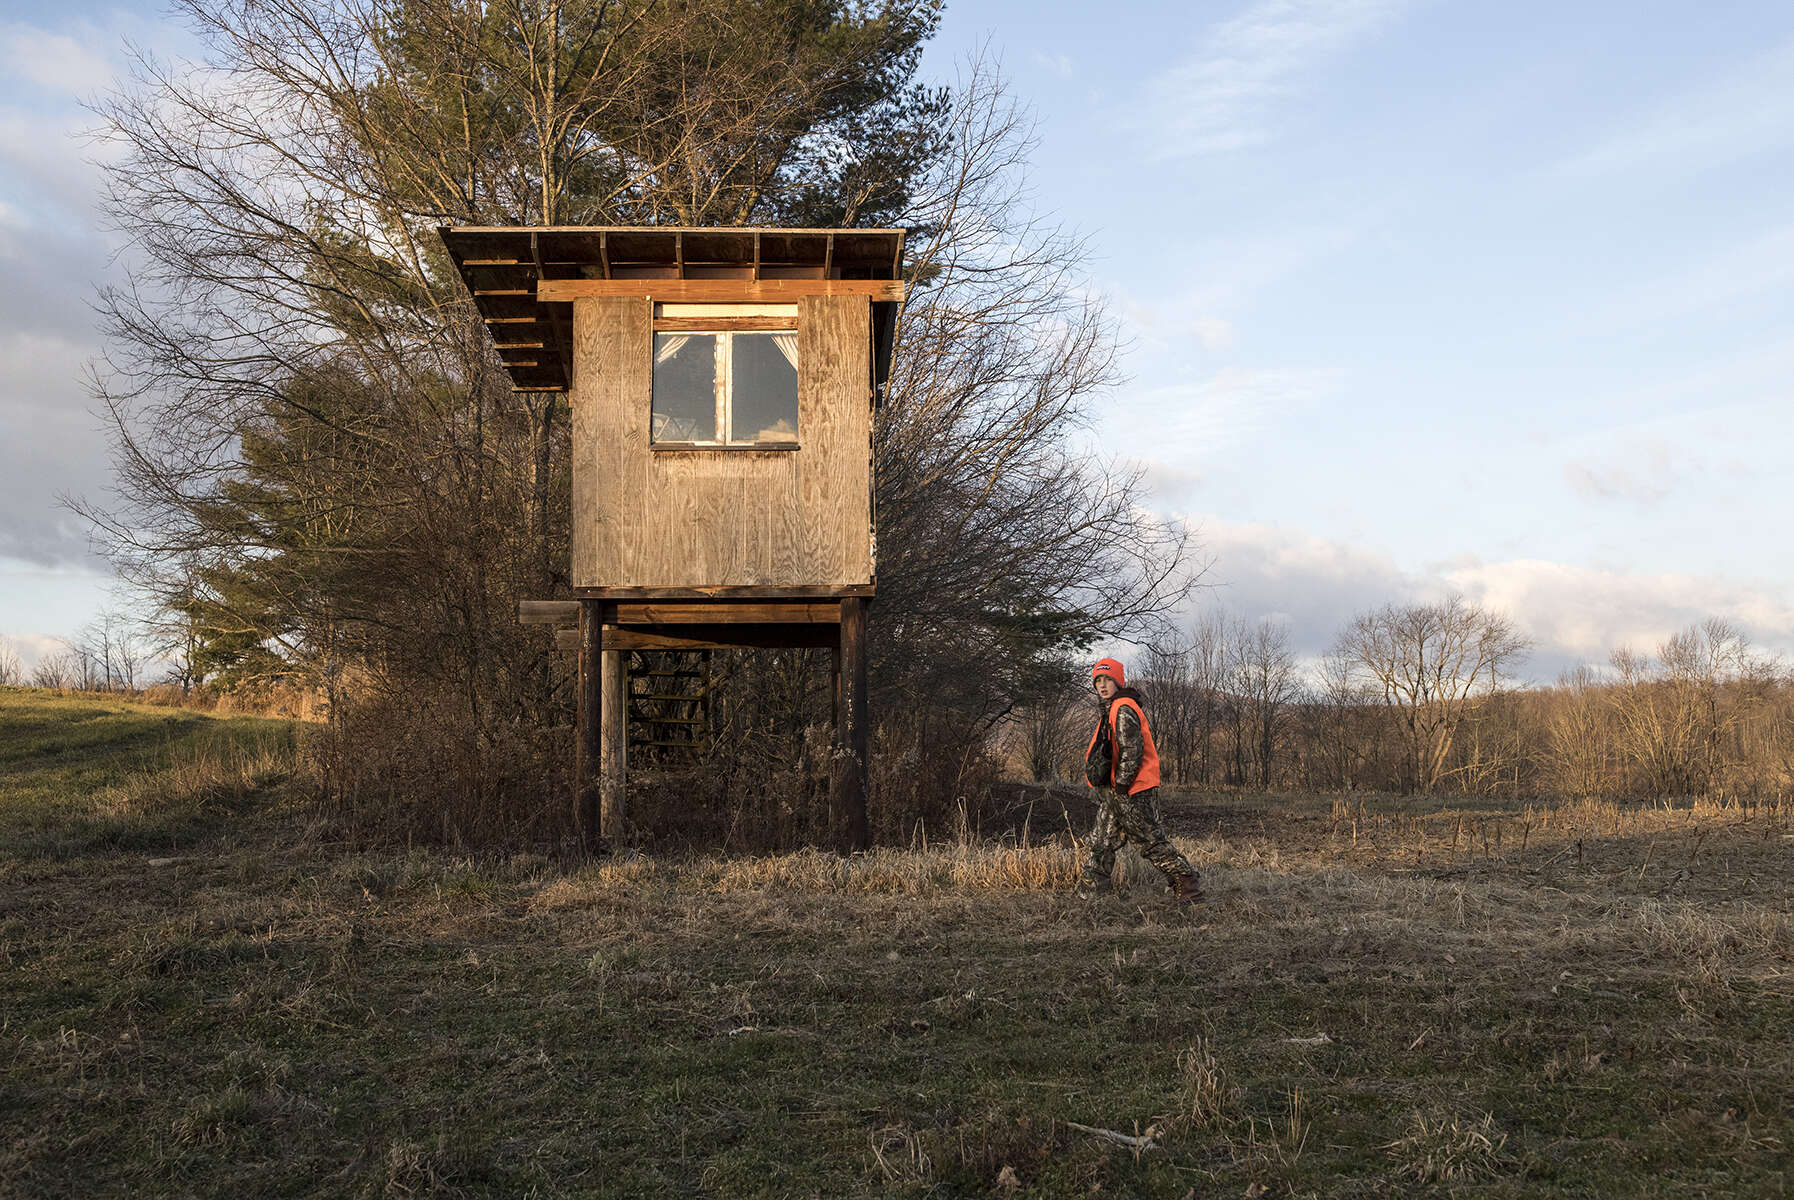 Ethan Cole, age 11, returns to the tree stand after searching with his father for a deer he shot while hunting on opening day of deer rifle hunting season in Troy, Penn., on Monday, November 27, 2017. Ethan is enrolled in the Mentored Youth Hunting Permit program and can hunt with a licensed adult mentor, but the gun must be carried by the adult and only one gun may be used between the pair. He went hunting with his father on opening day. The deer he shot was not found, leaving them to believe he just grazed it and it was not mortally wounded.